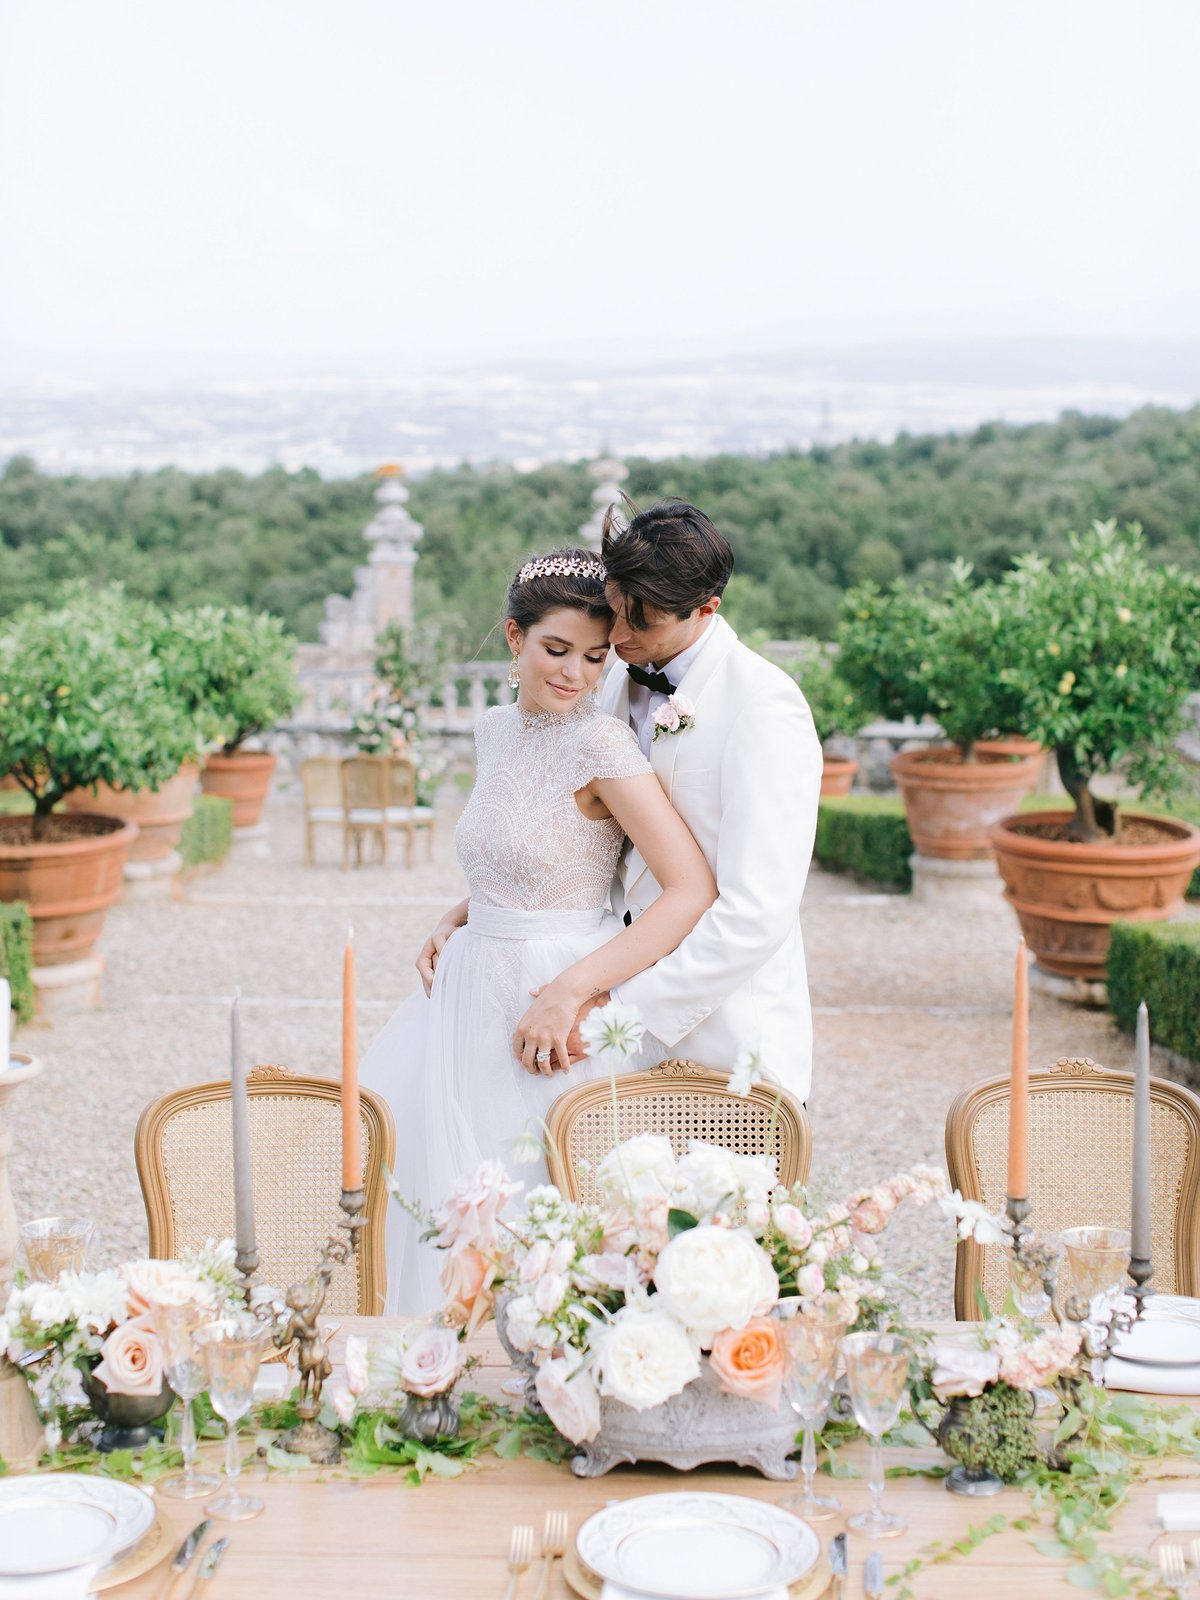 NKT-Events_Wedding-Inspiration-Editorial_Castello-di-Celsa_0012